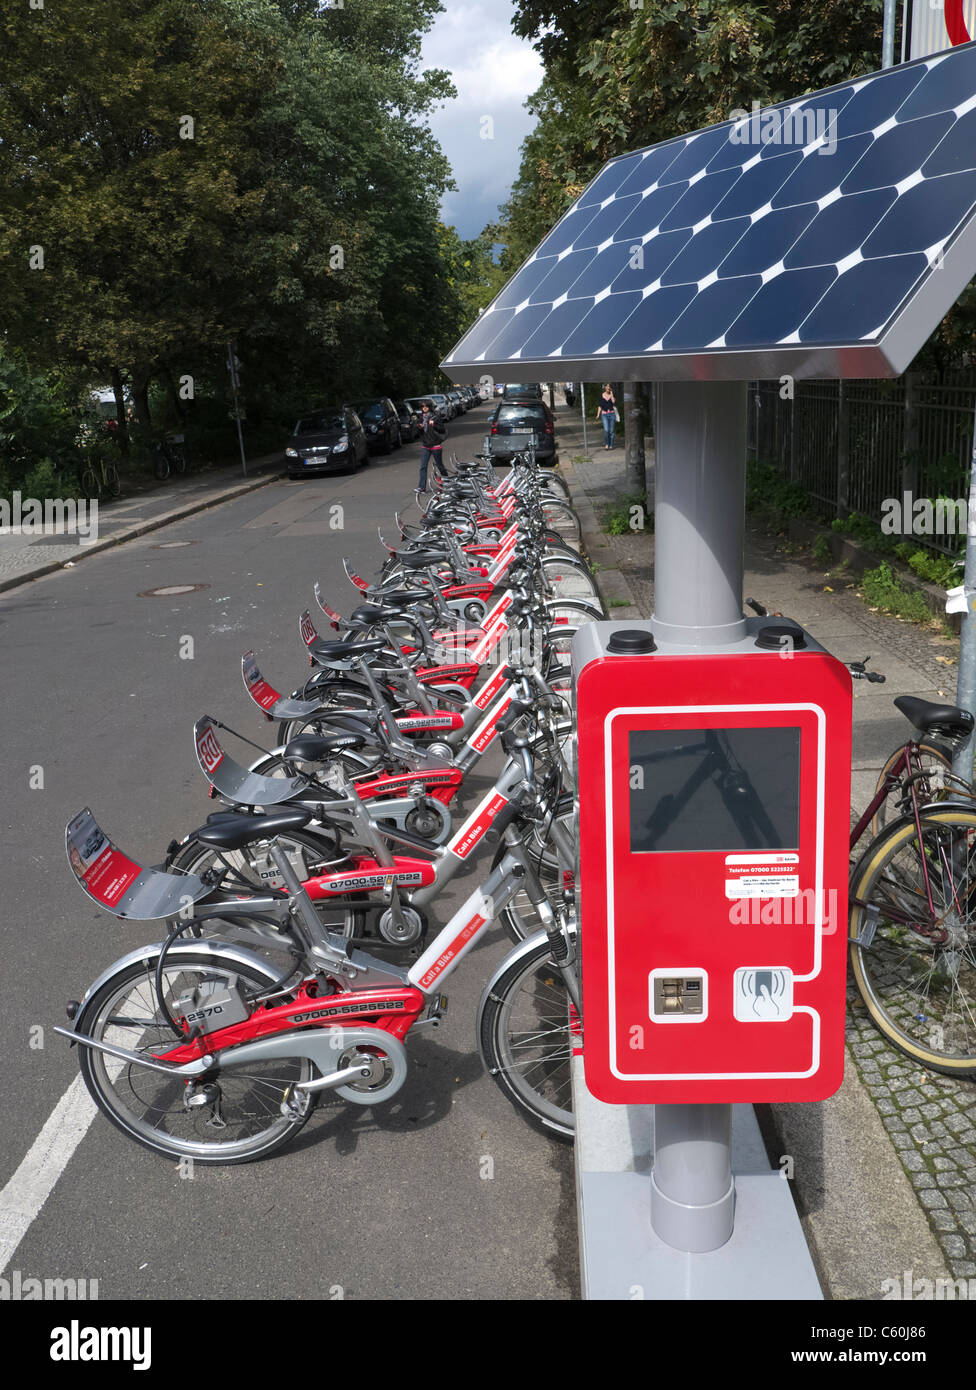 New solar powered hire station for Call-a-bike cycle rental service in Berlin Germany - Stock Image